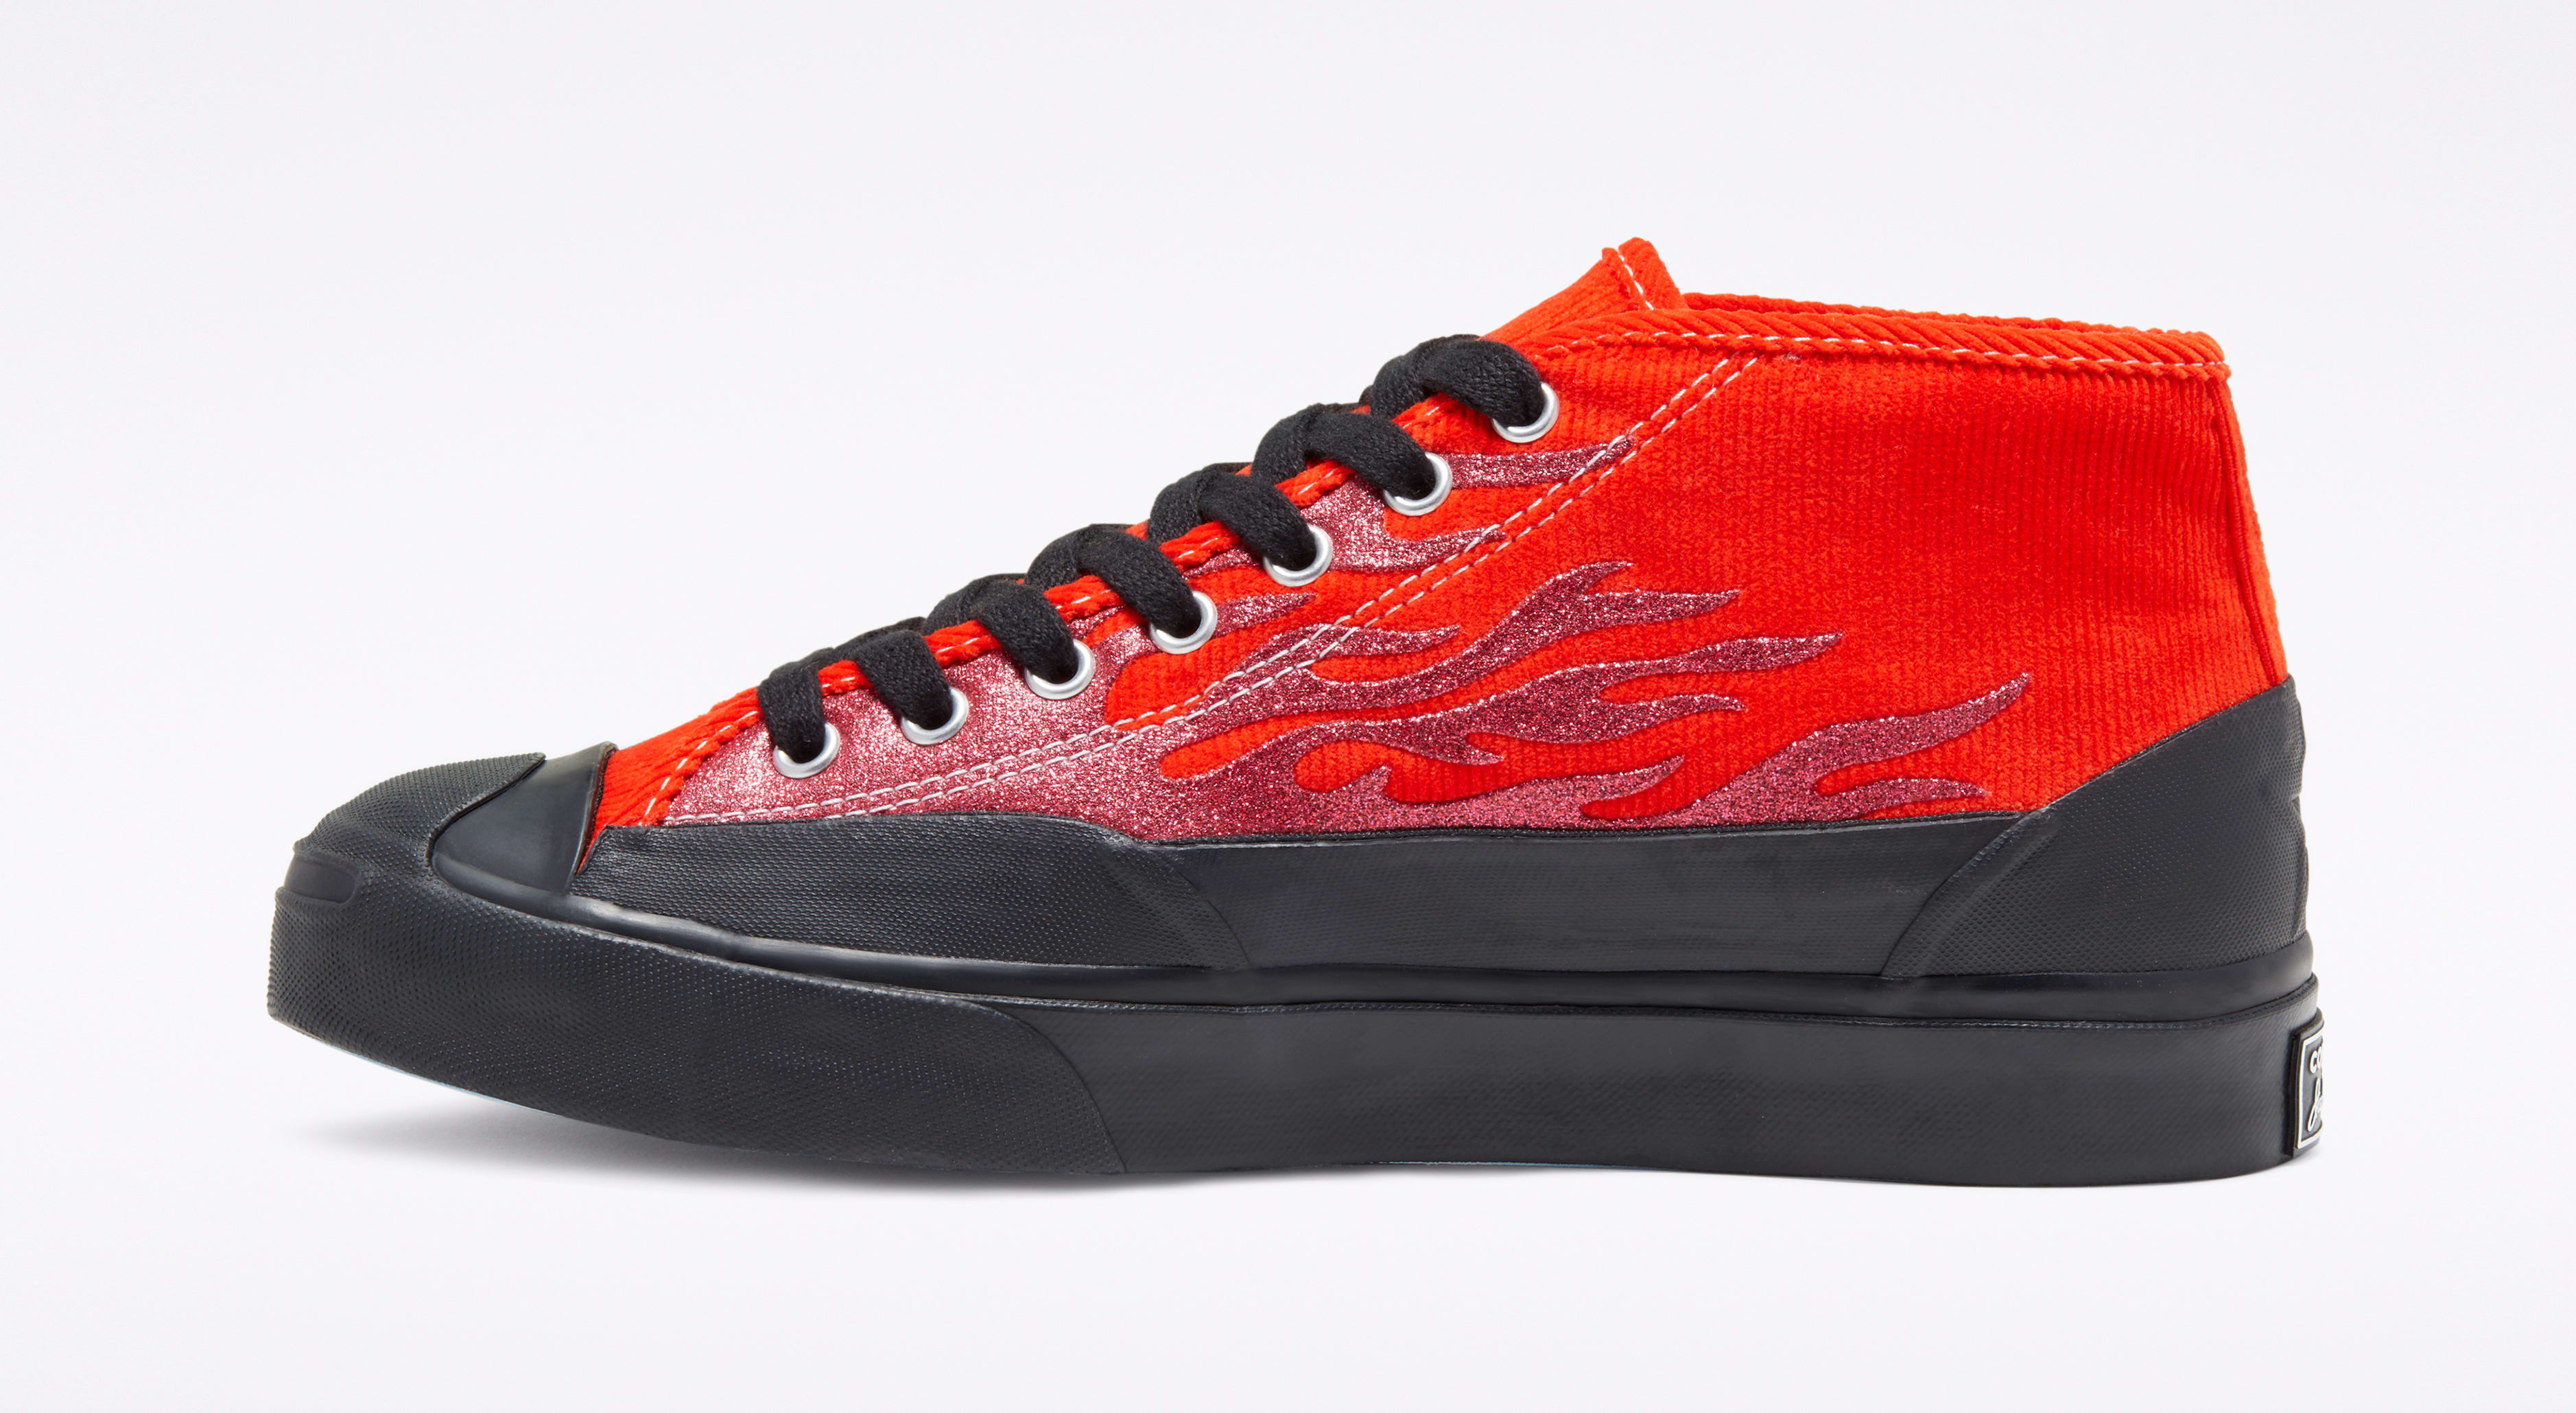 asap-nast-converse-jack-purcell-mid-red-167378c-medial